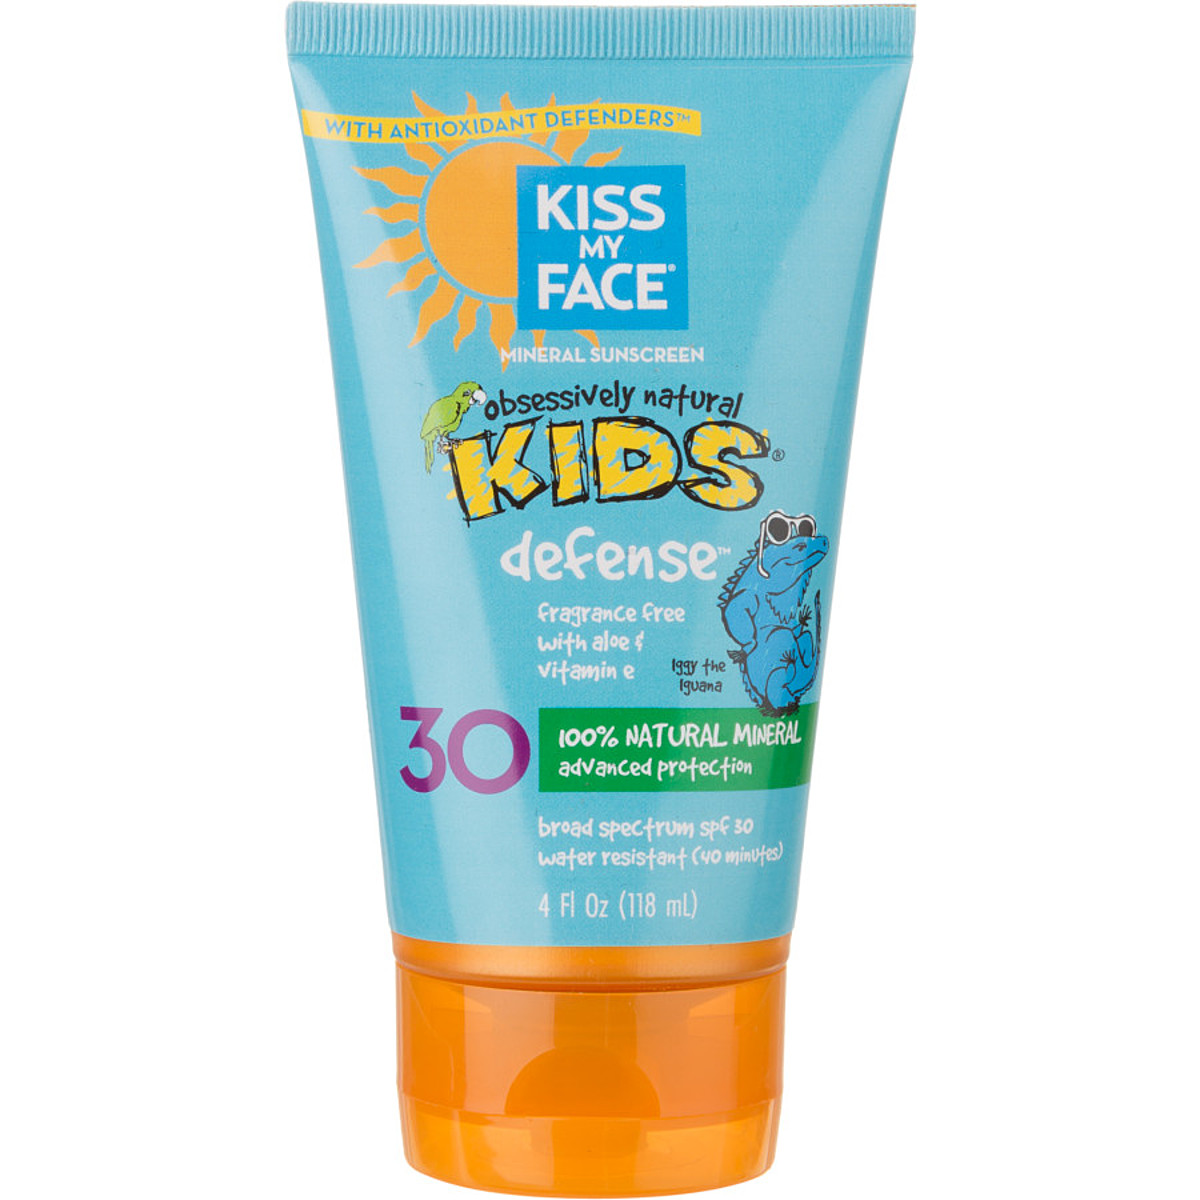 Kiss My Face Natural Mineral Sunblock Lotion SPF 30